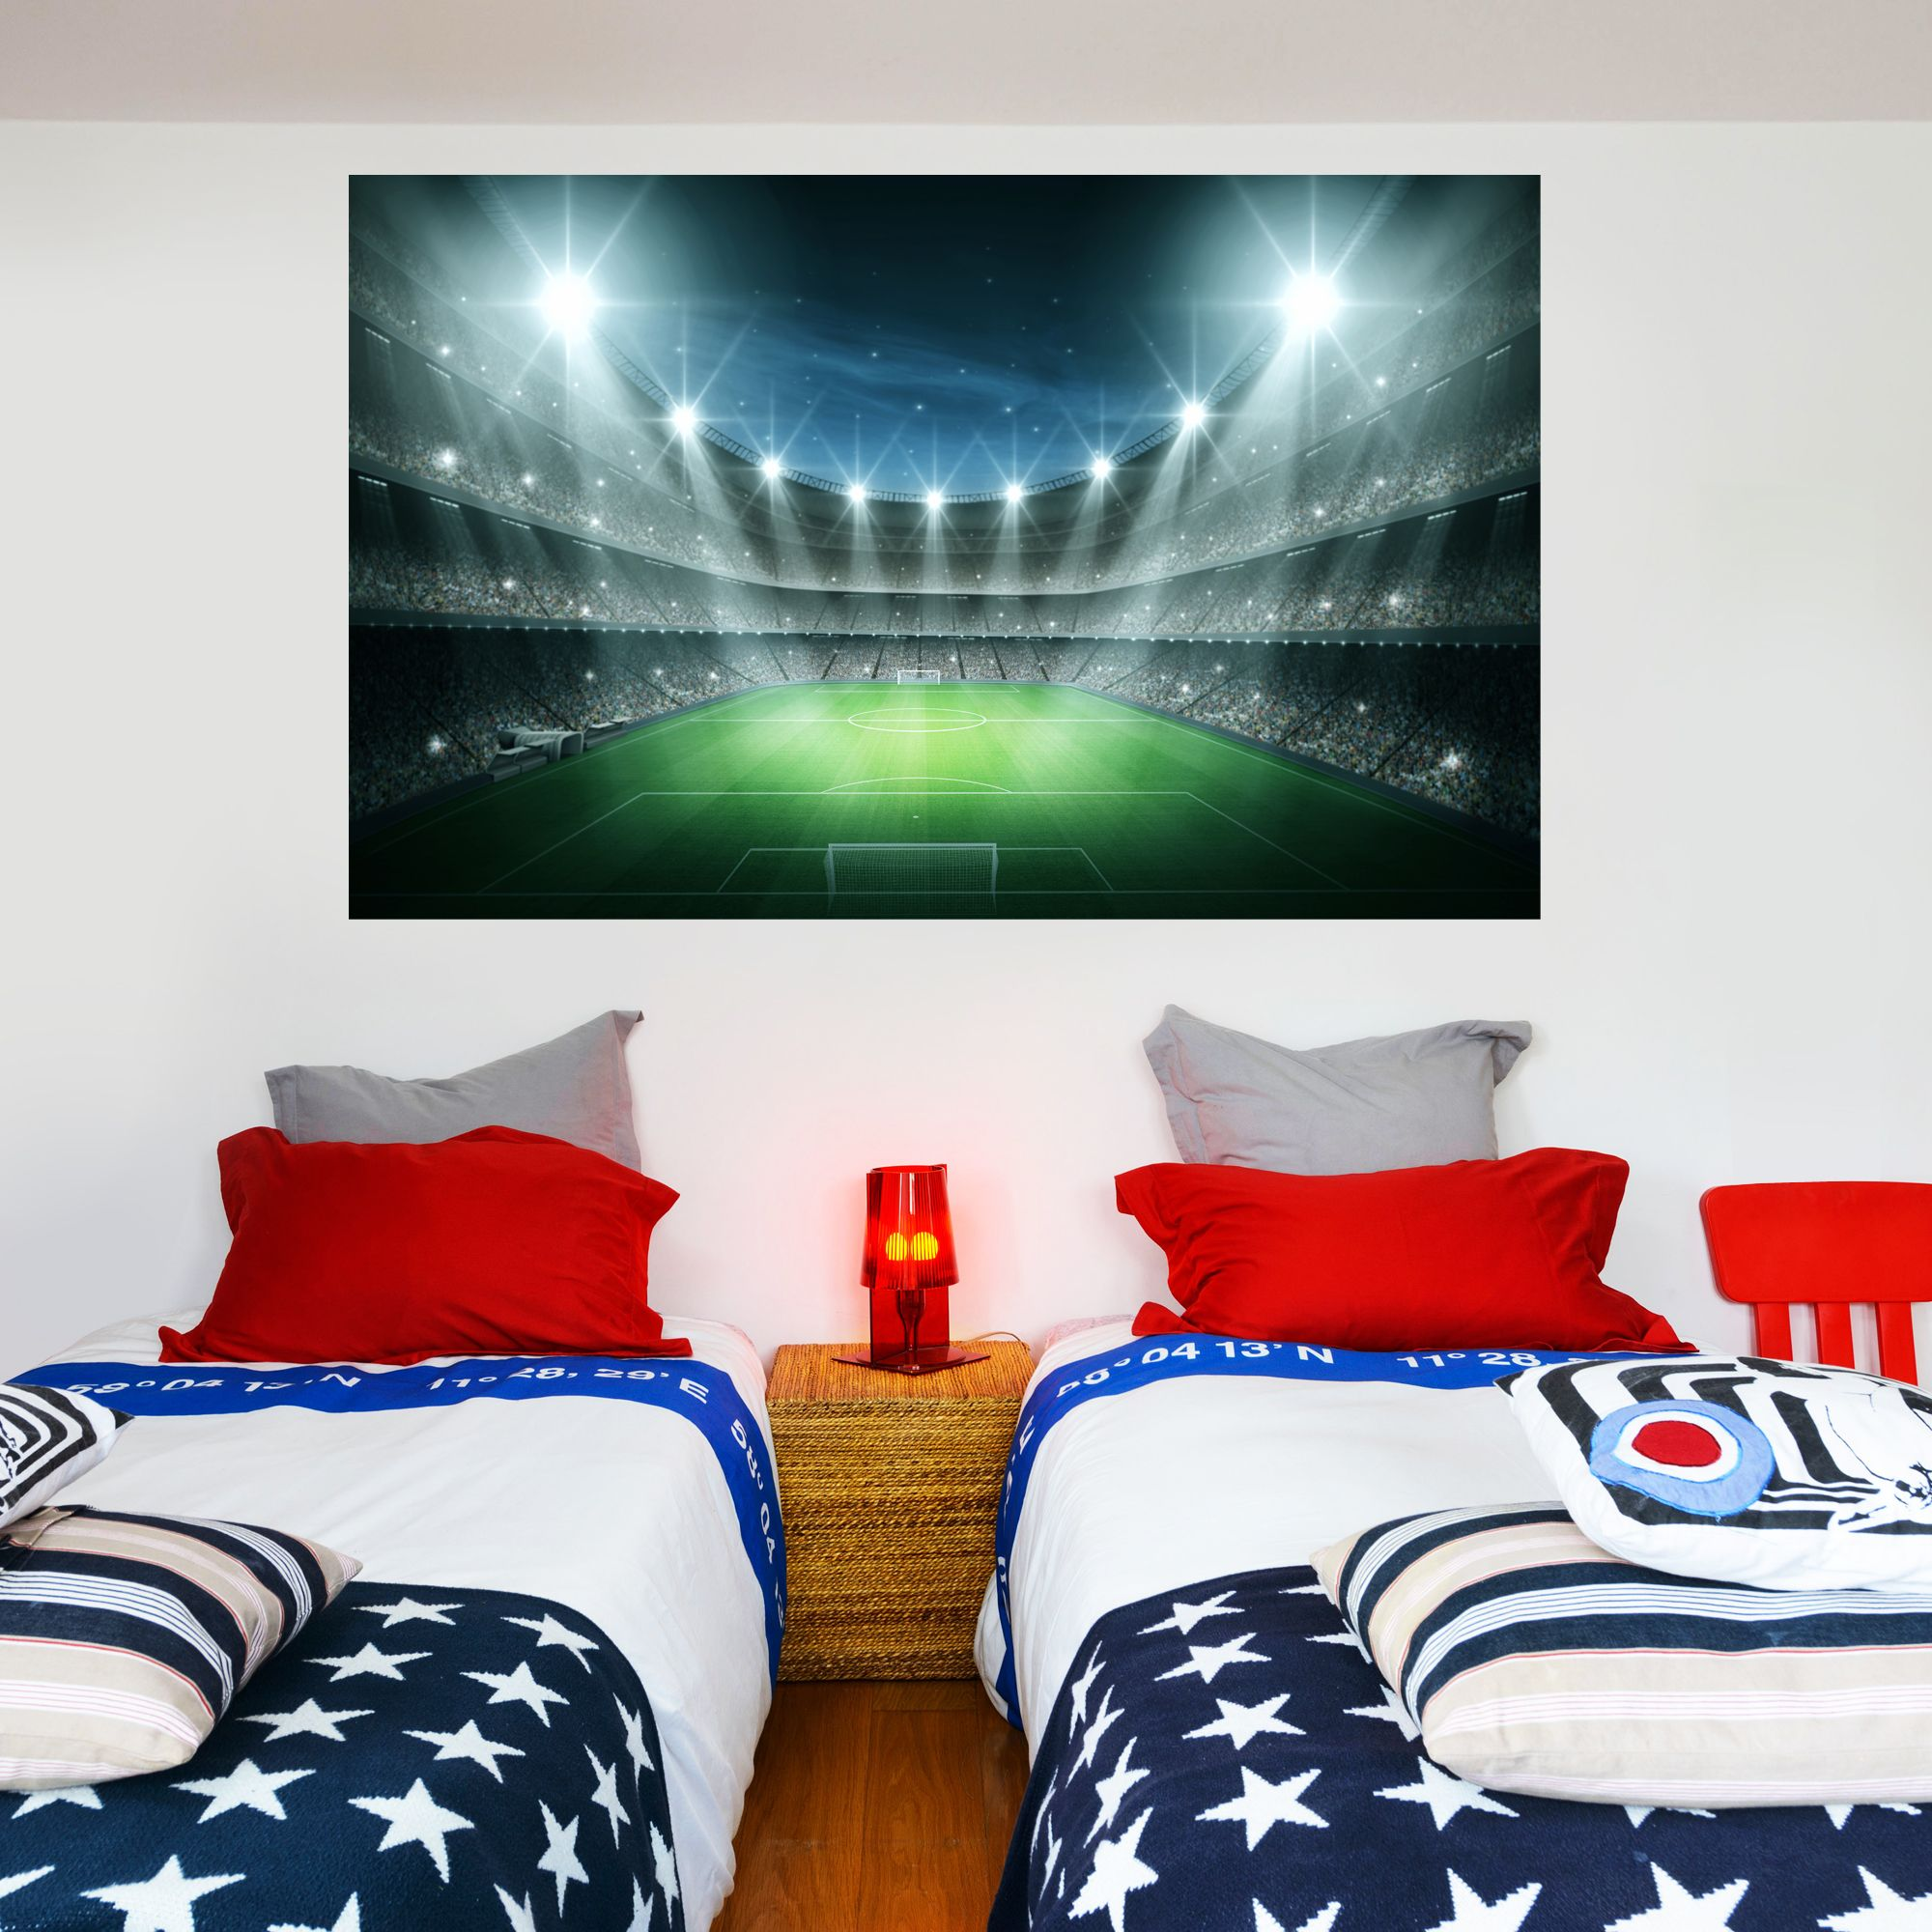 Bedroom Stadium Lights Wall Sticker Stickers Football Decorations Kids Sports Rugby Mural